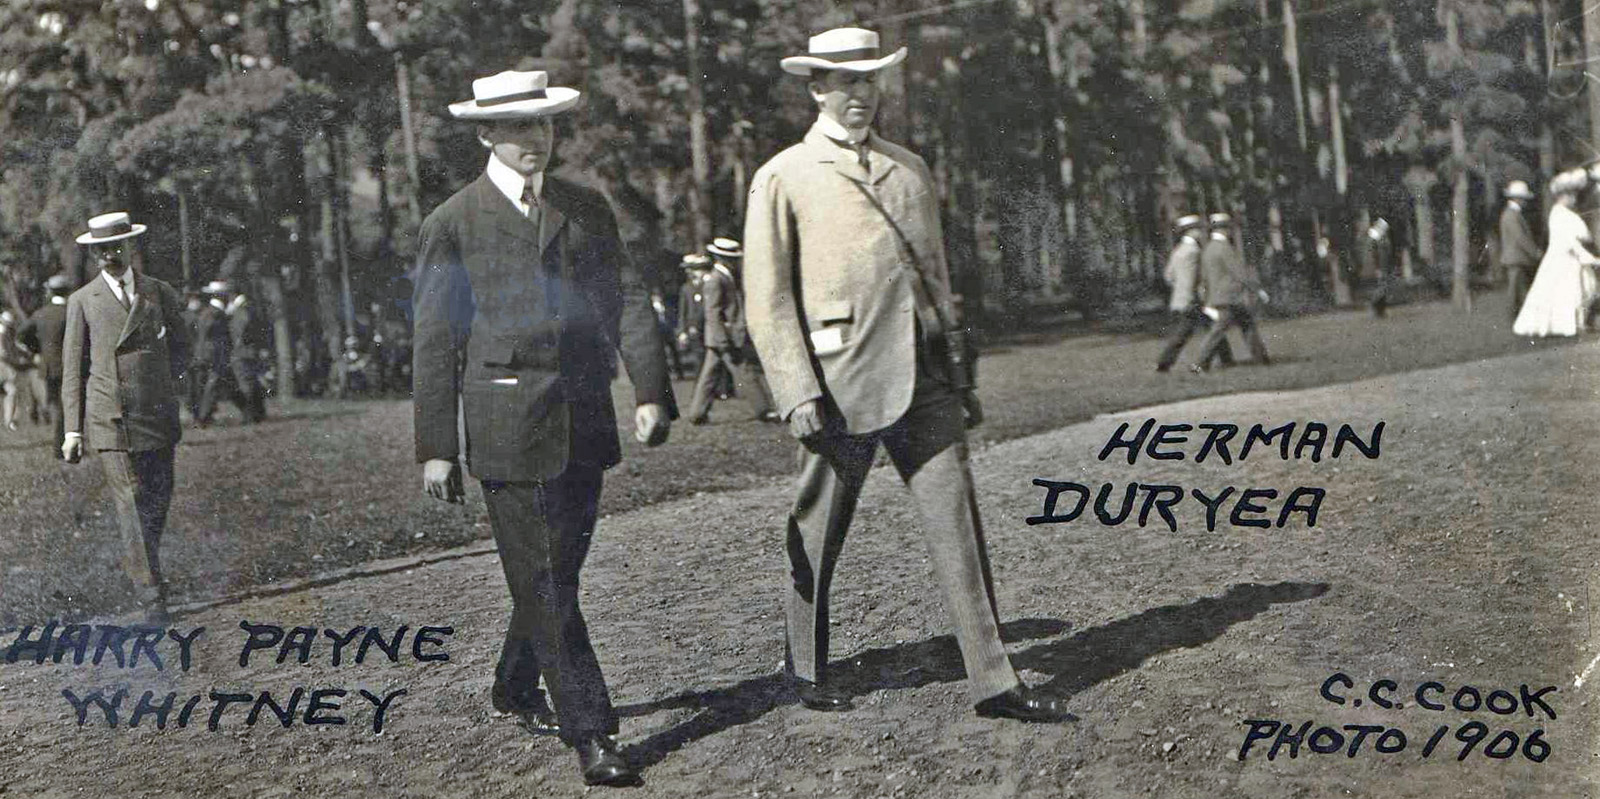 Harry Payne Whitney and Herman Duryea in 1906 (C. C. Cook/Museum Collection)